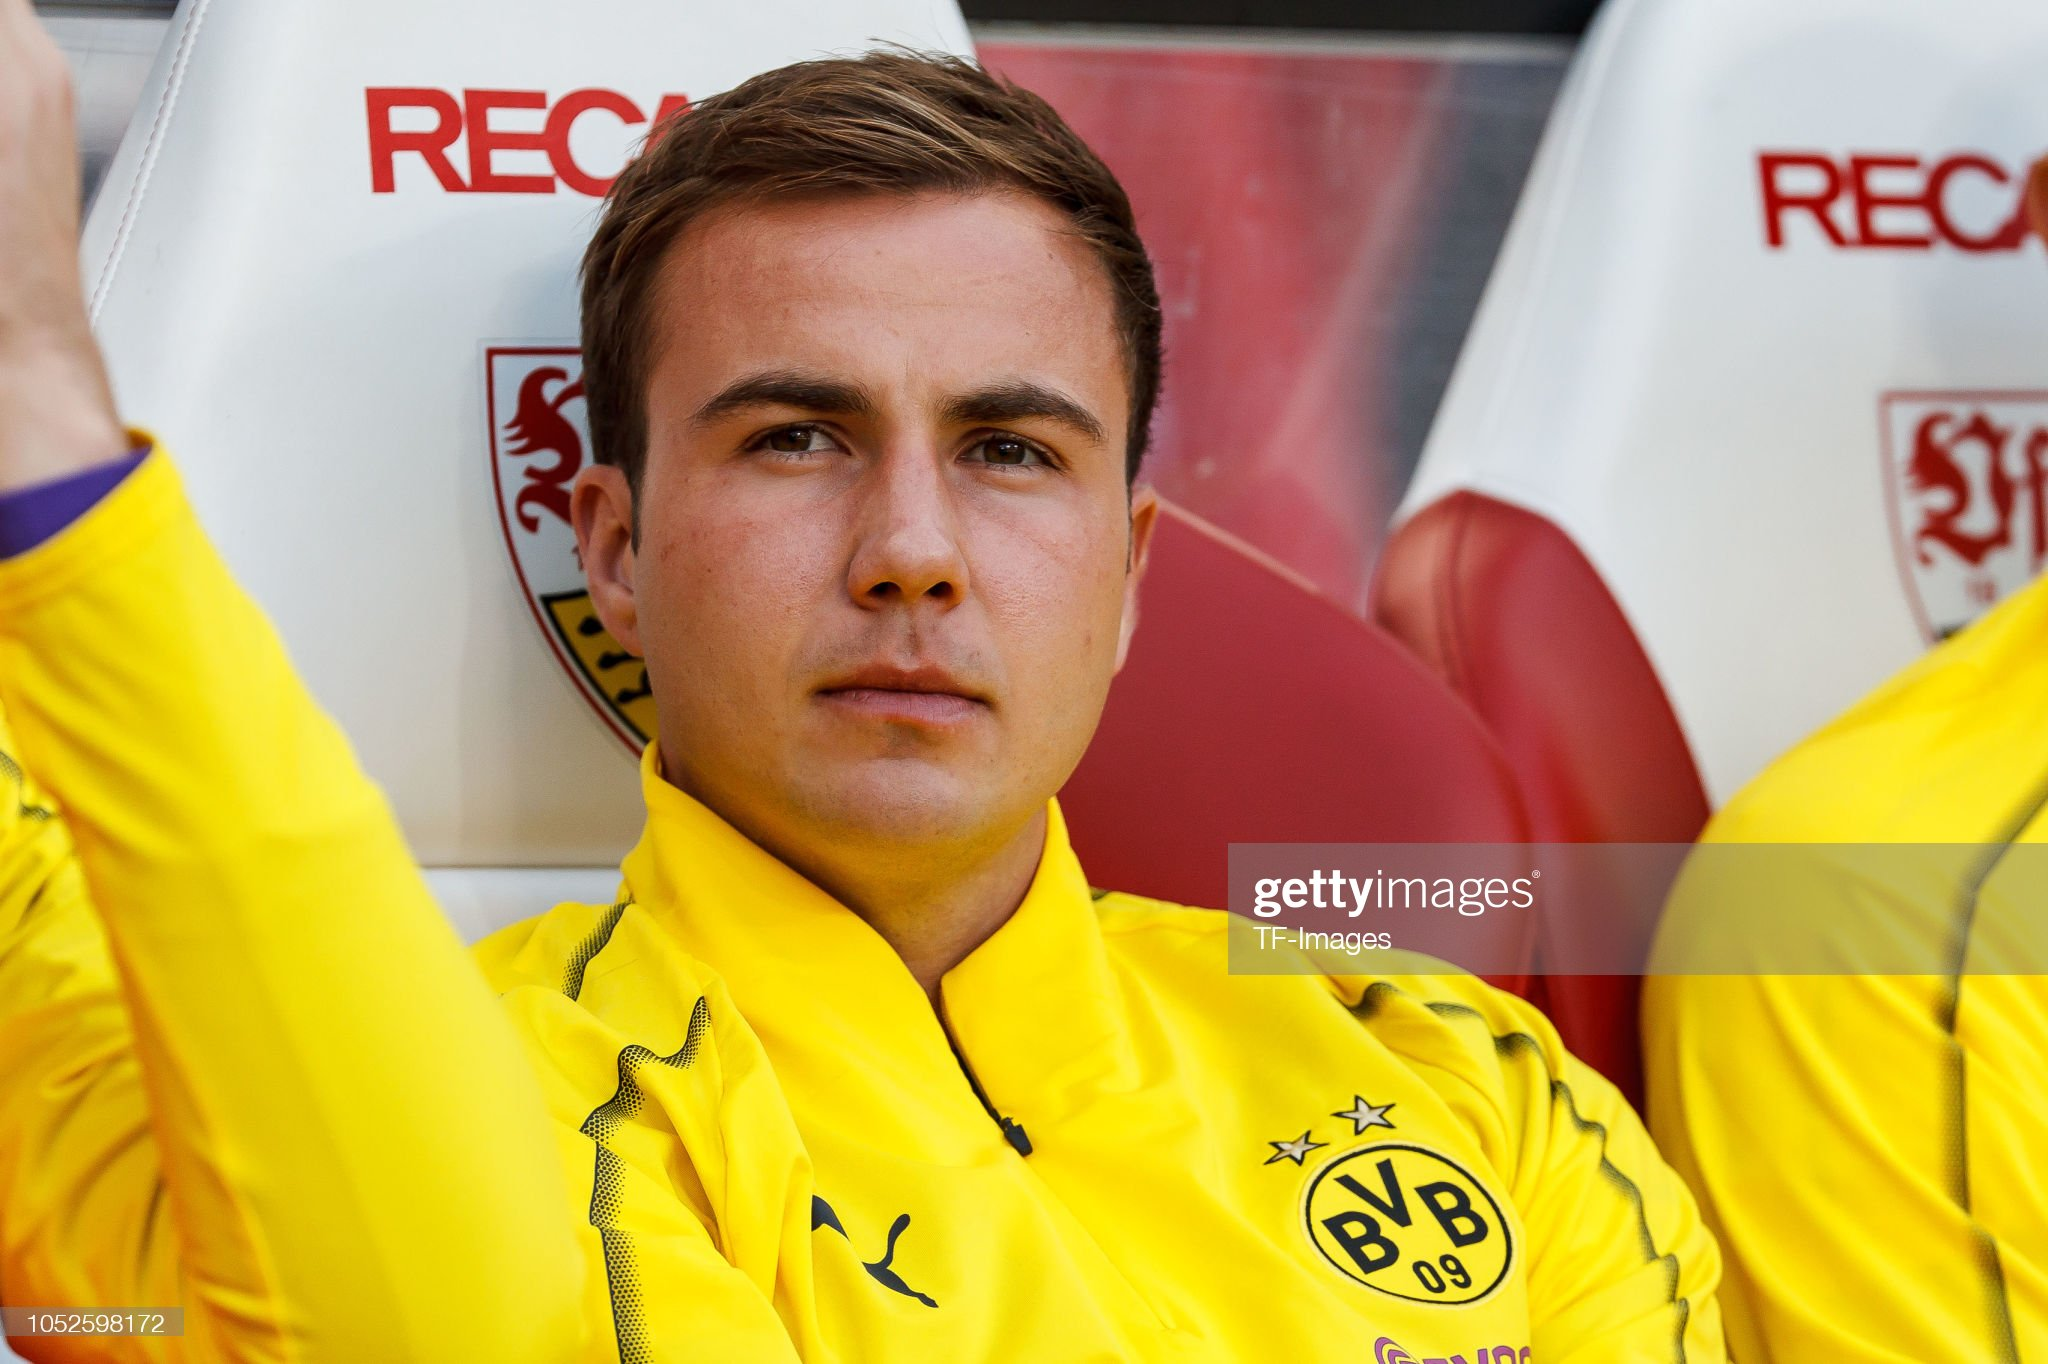 mario-goetze-of-borussia-dortmund-looks-on-prior-the-bundesliga-match-picture-id1052598172?s=2048x2048